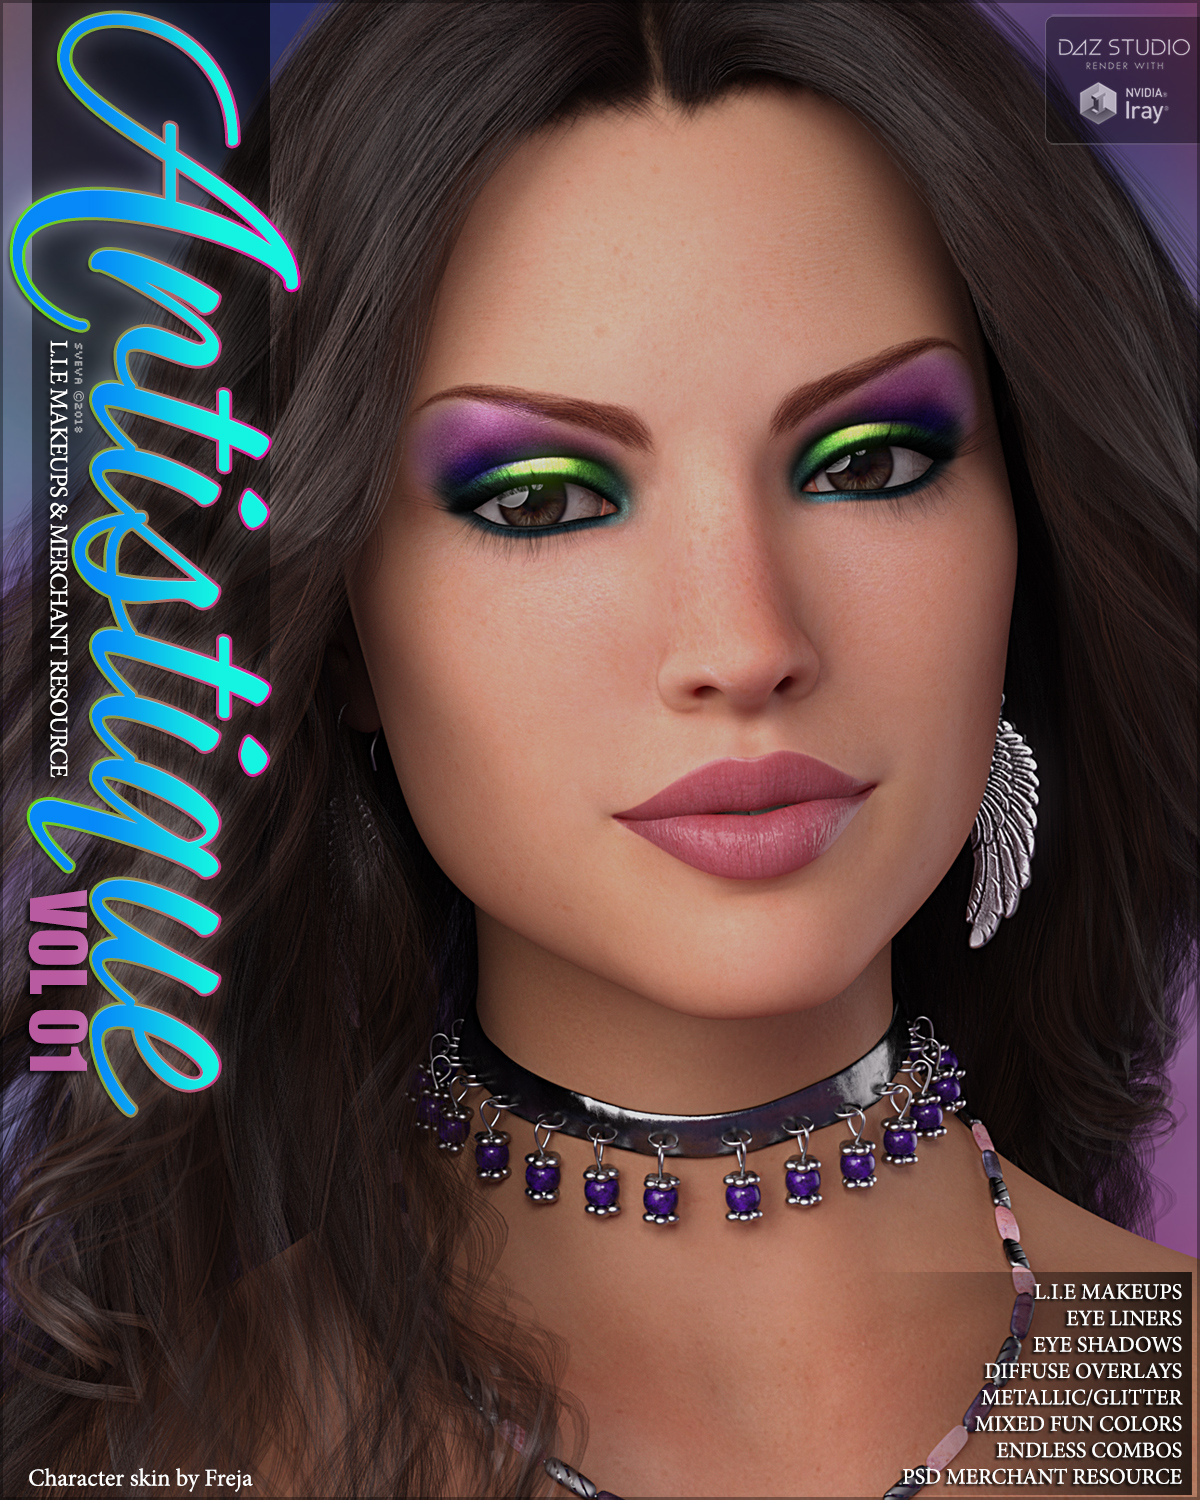 SV Artistique L.I.E and Resource Makeups G8F G3F by Sveva